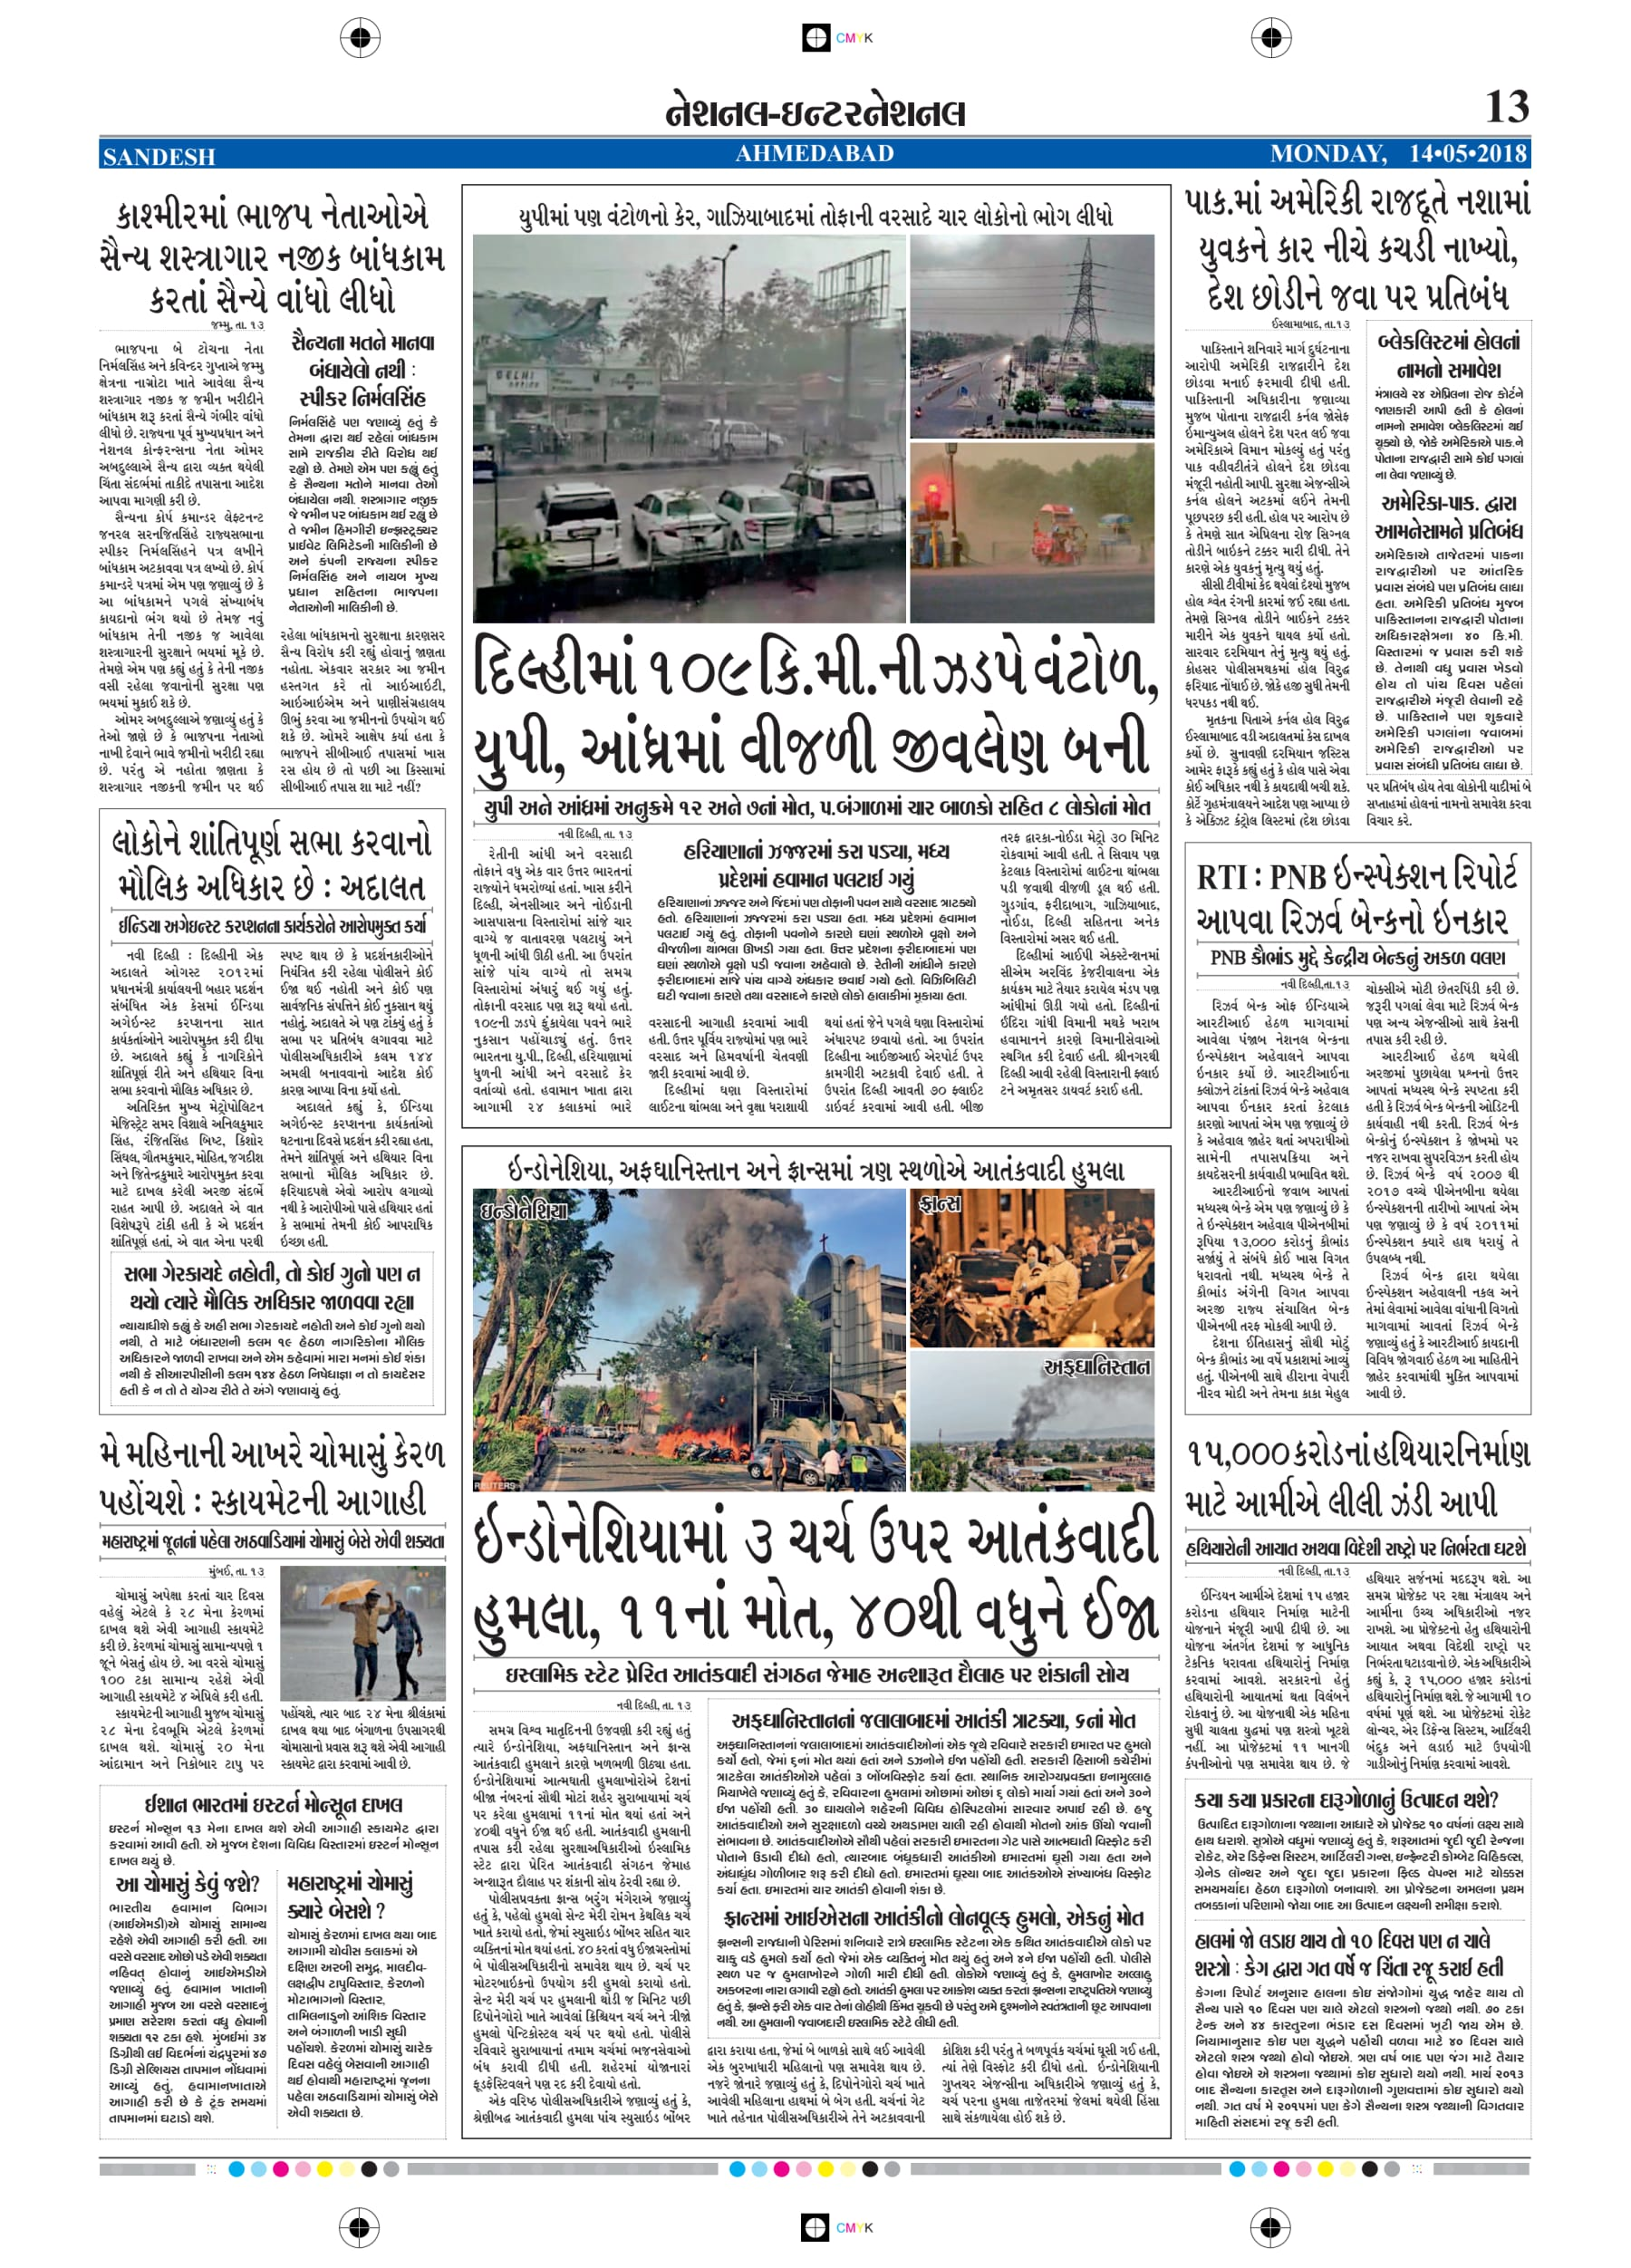 sandesh epaper ahmedabad pdf download